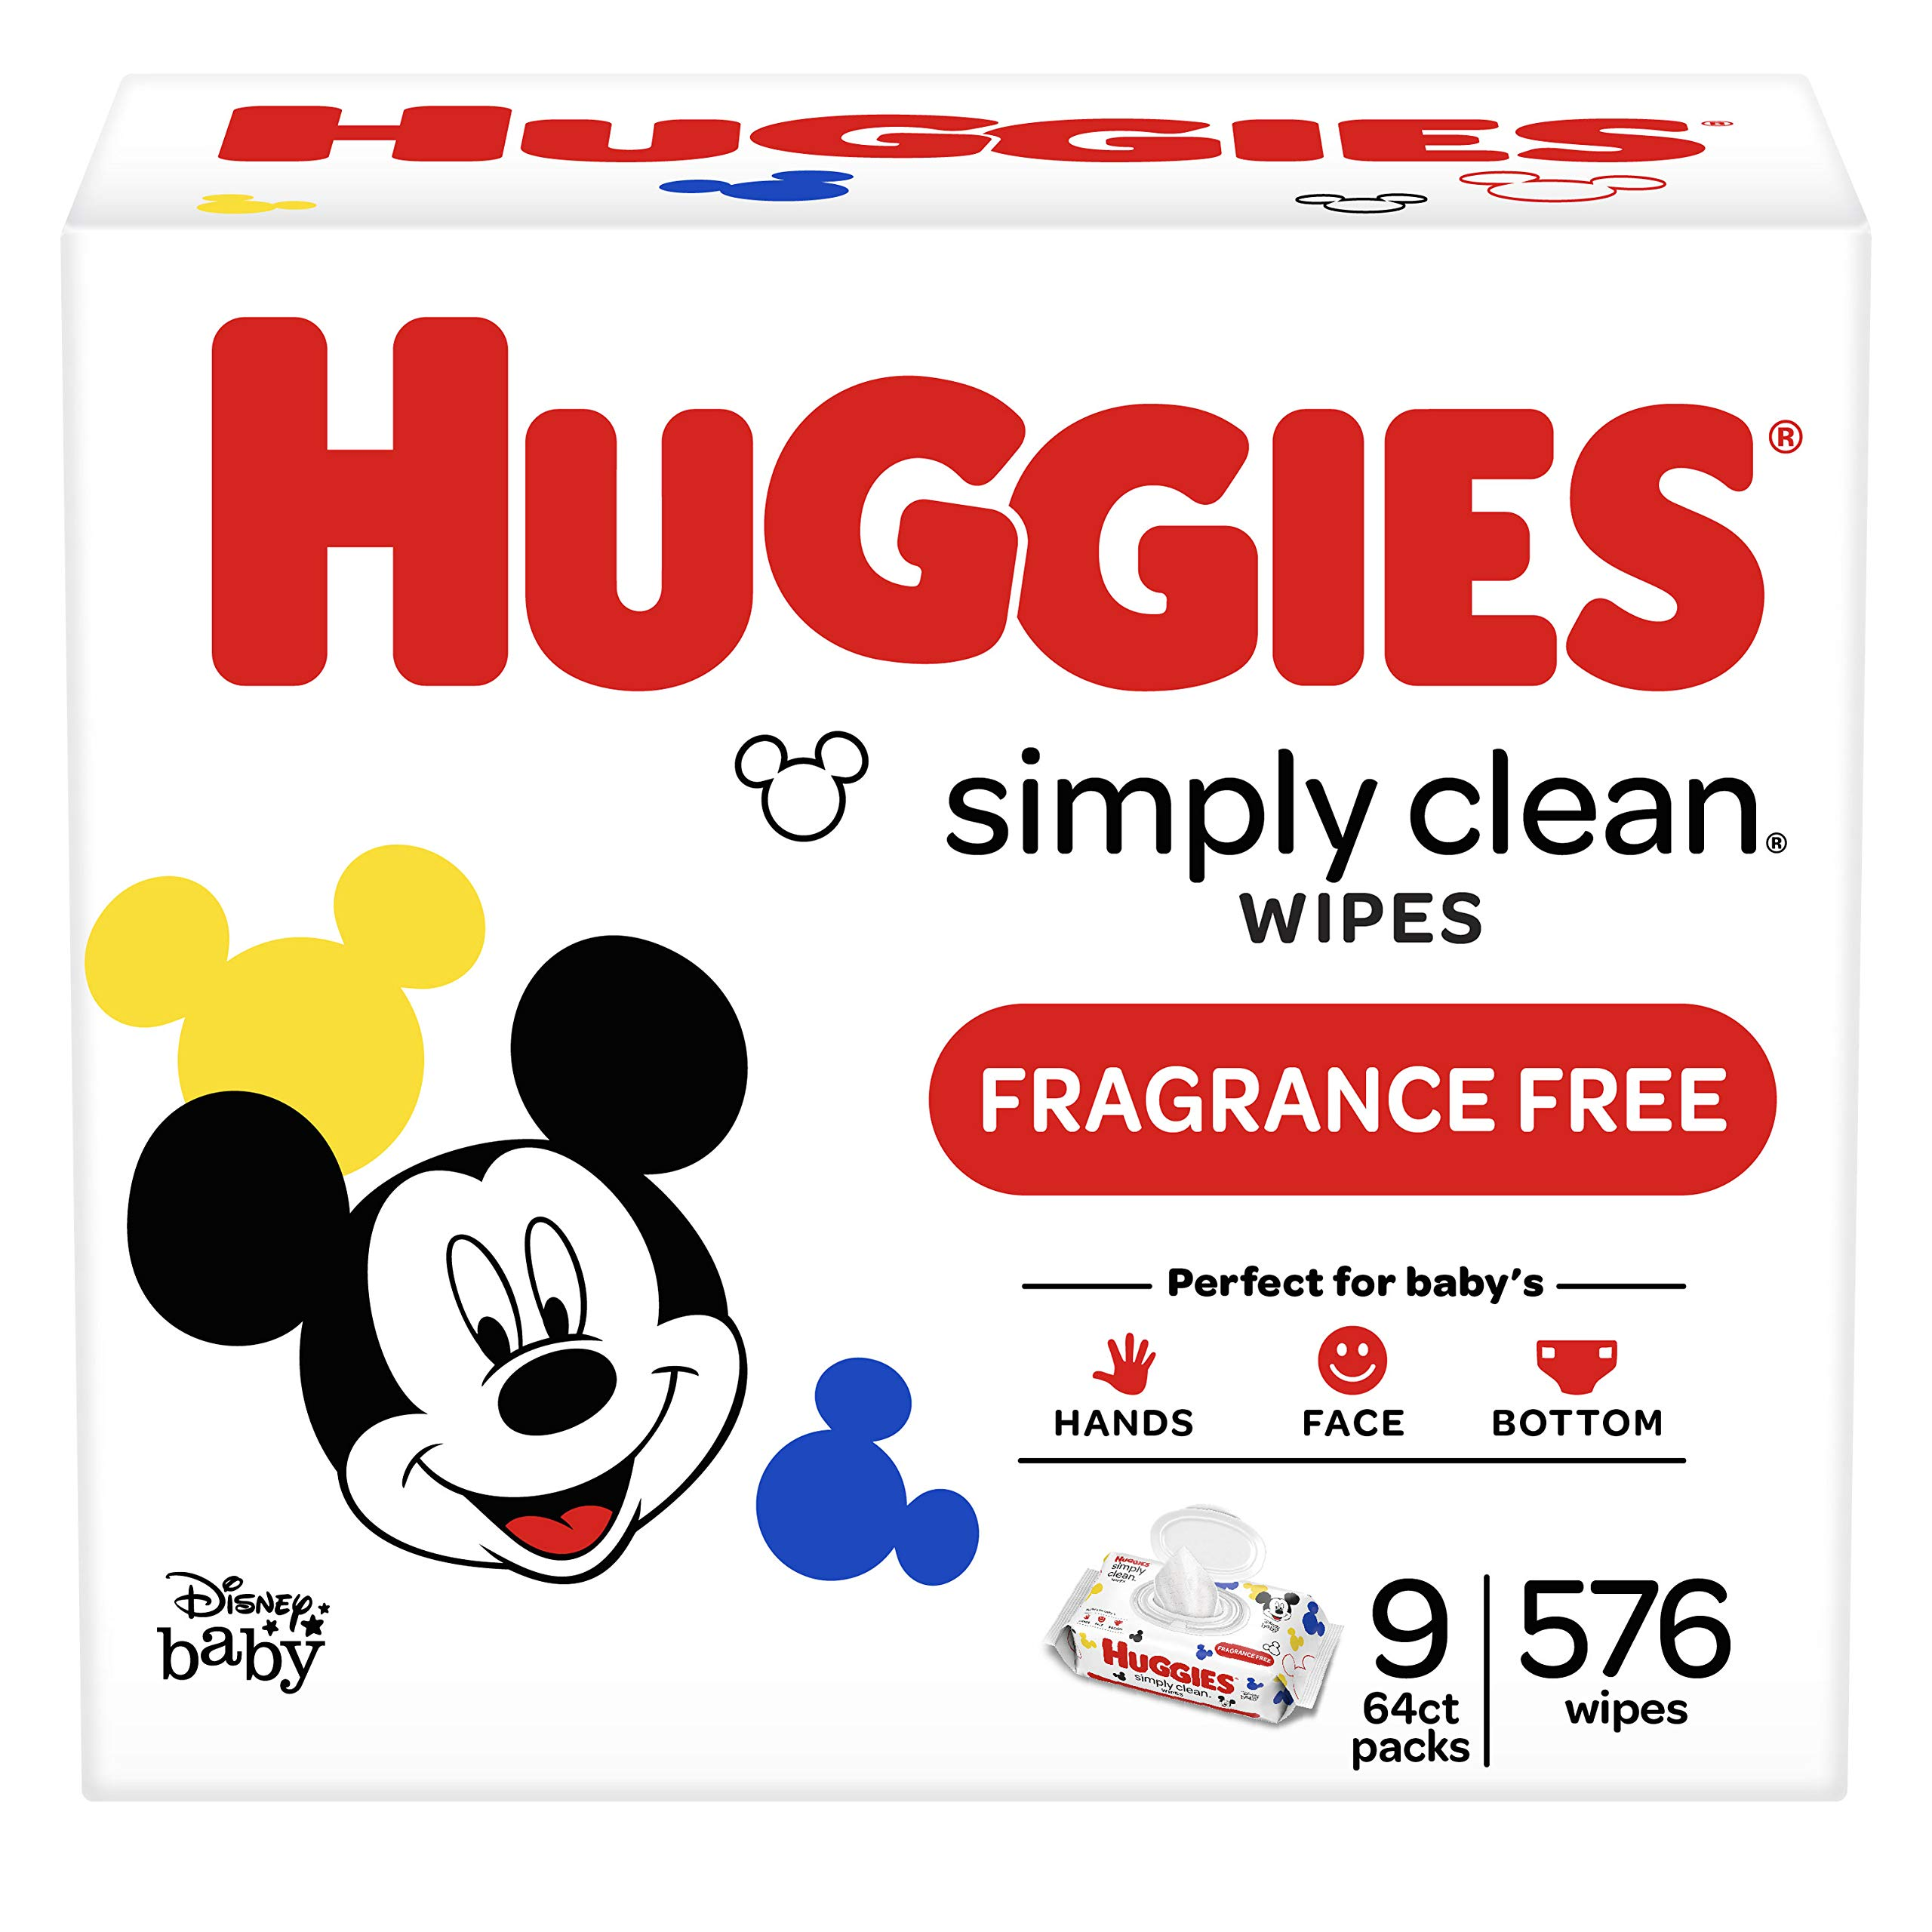 HUGGIES Simply Clean Fragrance-free Baby Wipes, Soft Pack (9-Pack, 576 Sheets Total), Alcohol-free, Hypoallergenic (Packaging May Vary) by Huggies